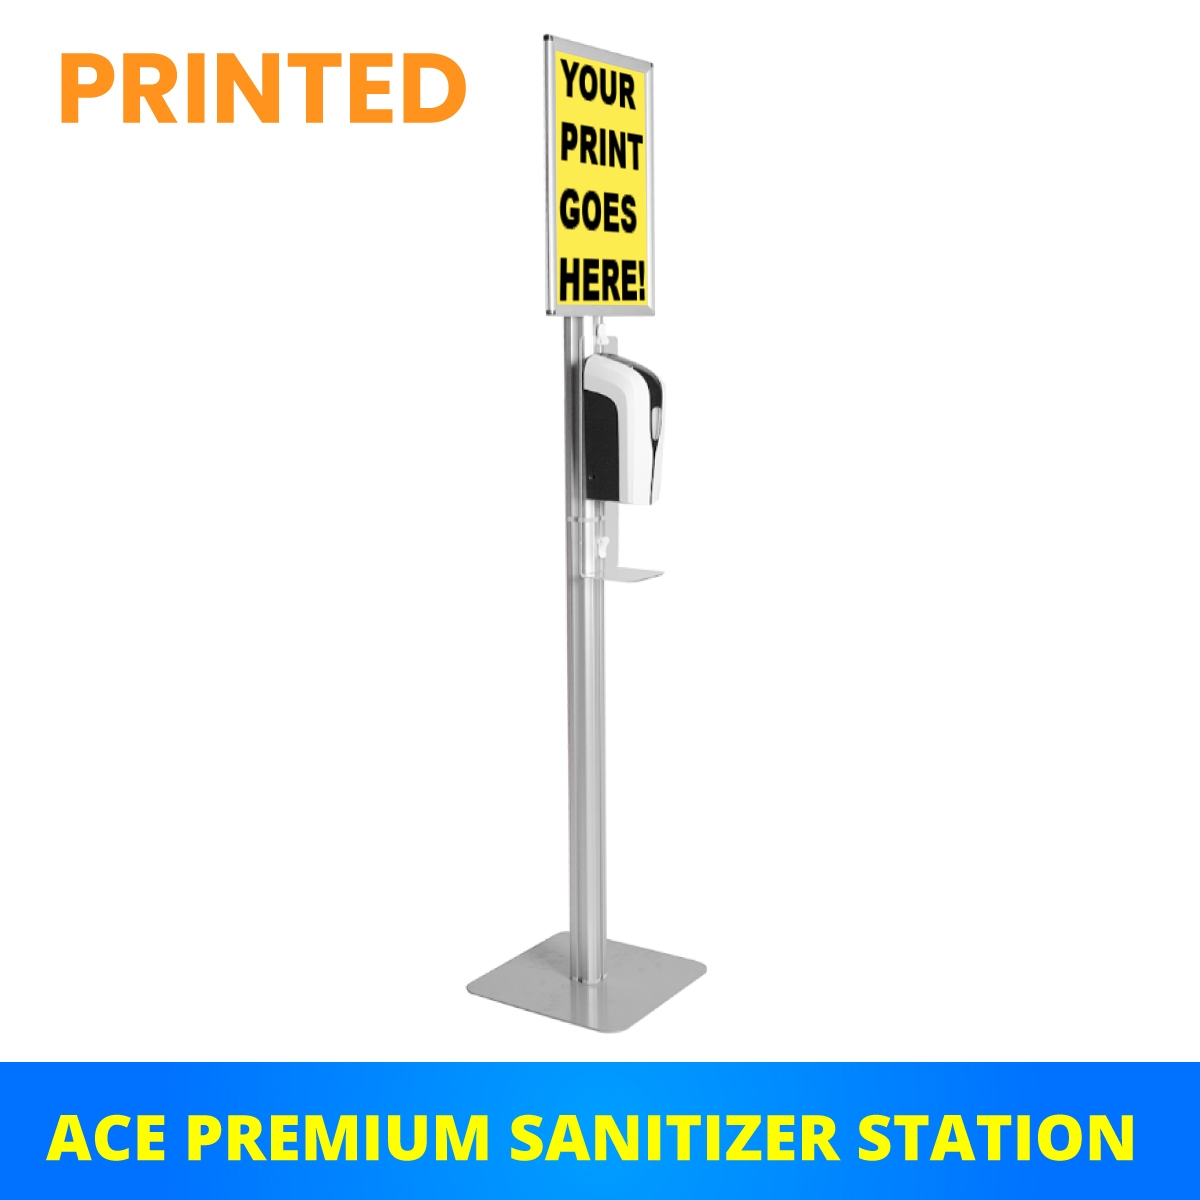 (PRINTED) ACE Premium Sanitizer Station w/ LIQUID or GEL Dispenser - Single Sided Sign